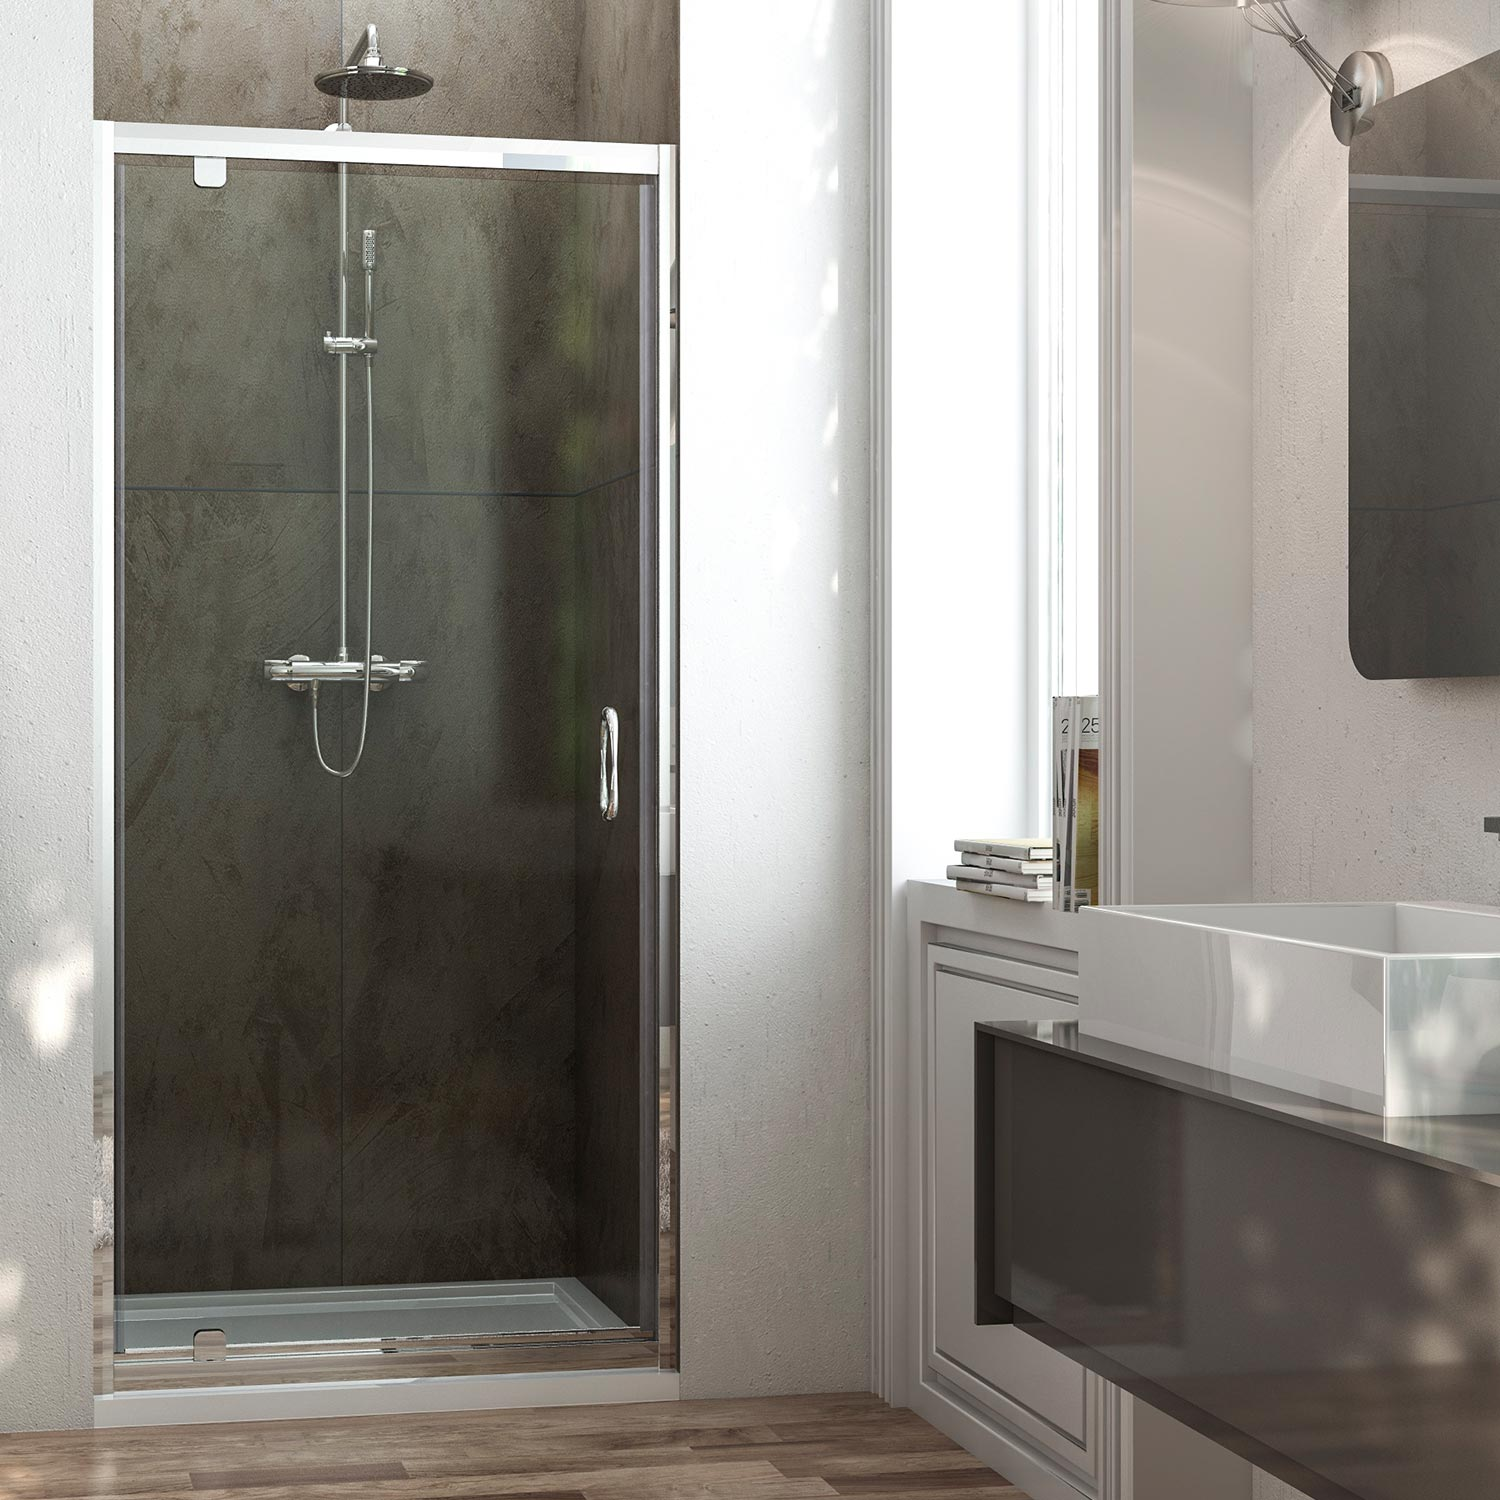 single-swing-shower-door-pr009-2_1543847430_638